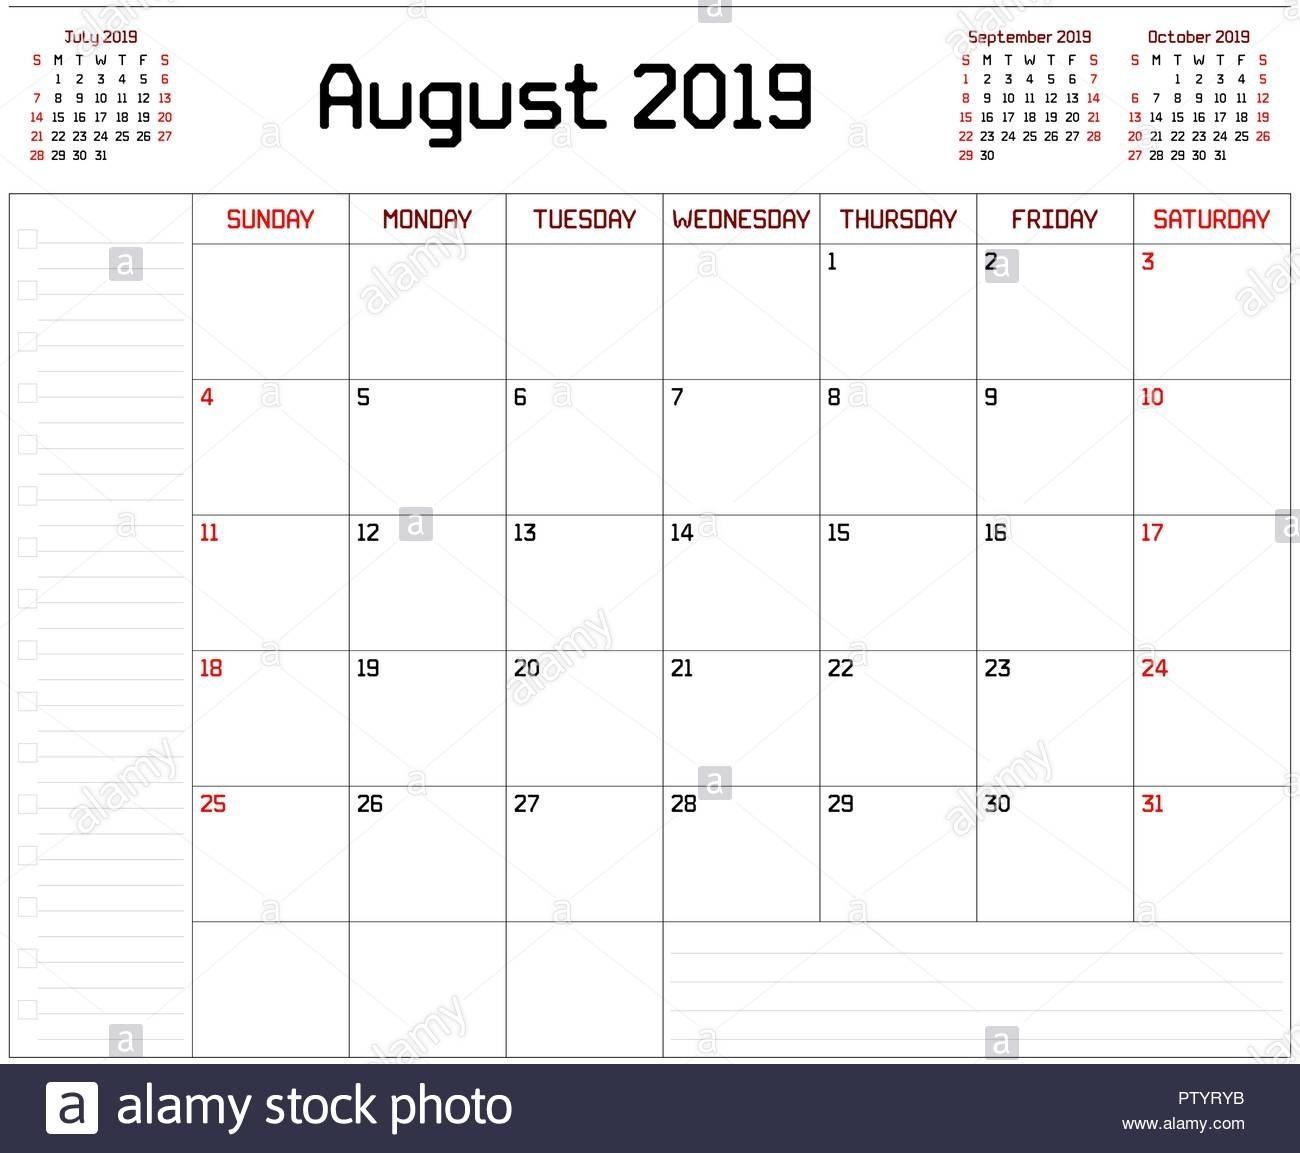 A Monthly Planner Calendar For August 2019 On White Background. A throughout Month Of August Calendar With Lines